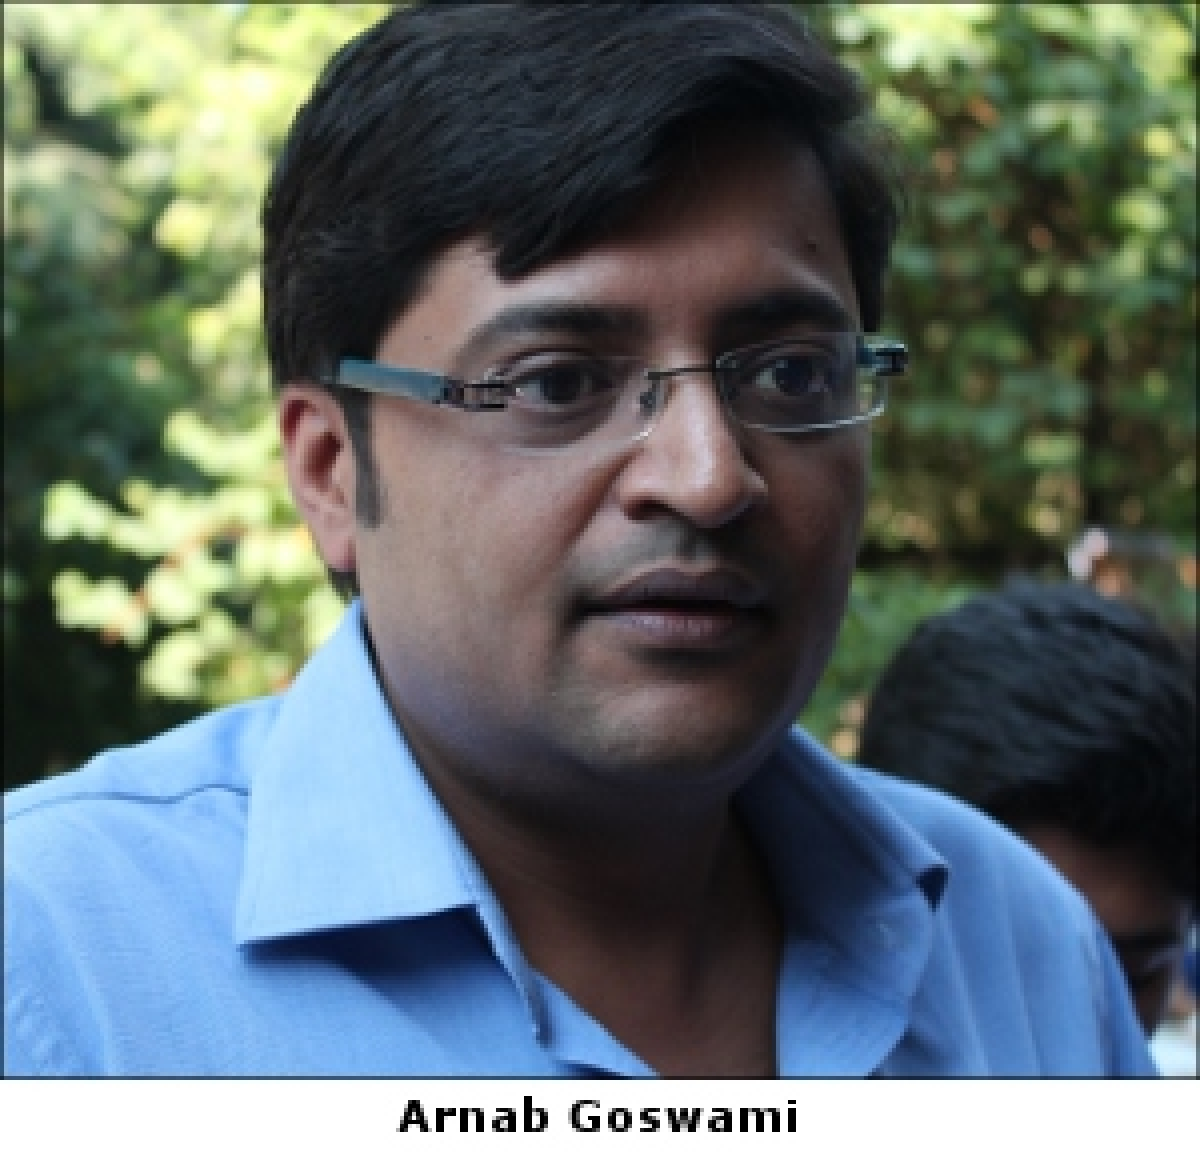 """The charges are laughable:"" Arnab Goswami on BCCL's police complaint"